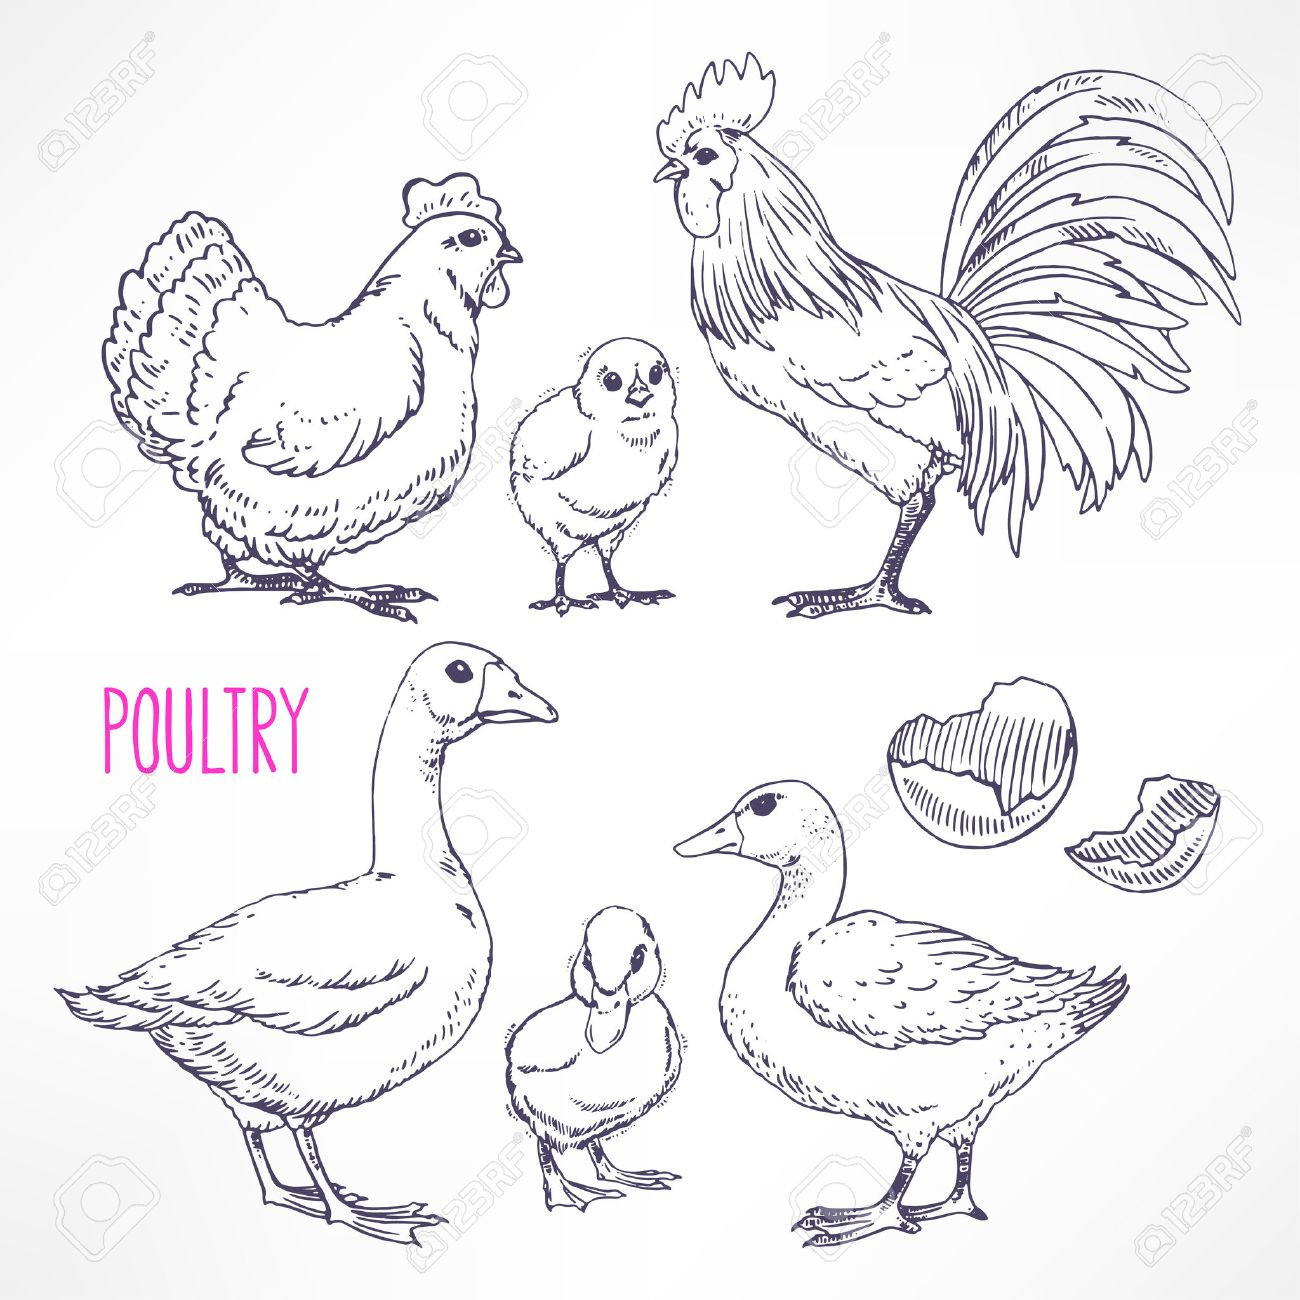 Set with various poultry. chicken, rooster, duck. hand-drawn illustration - 40207993